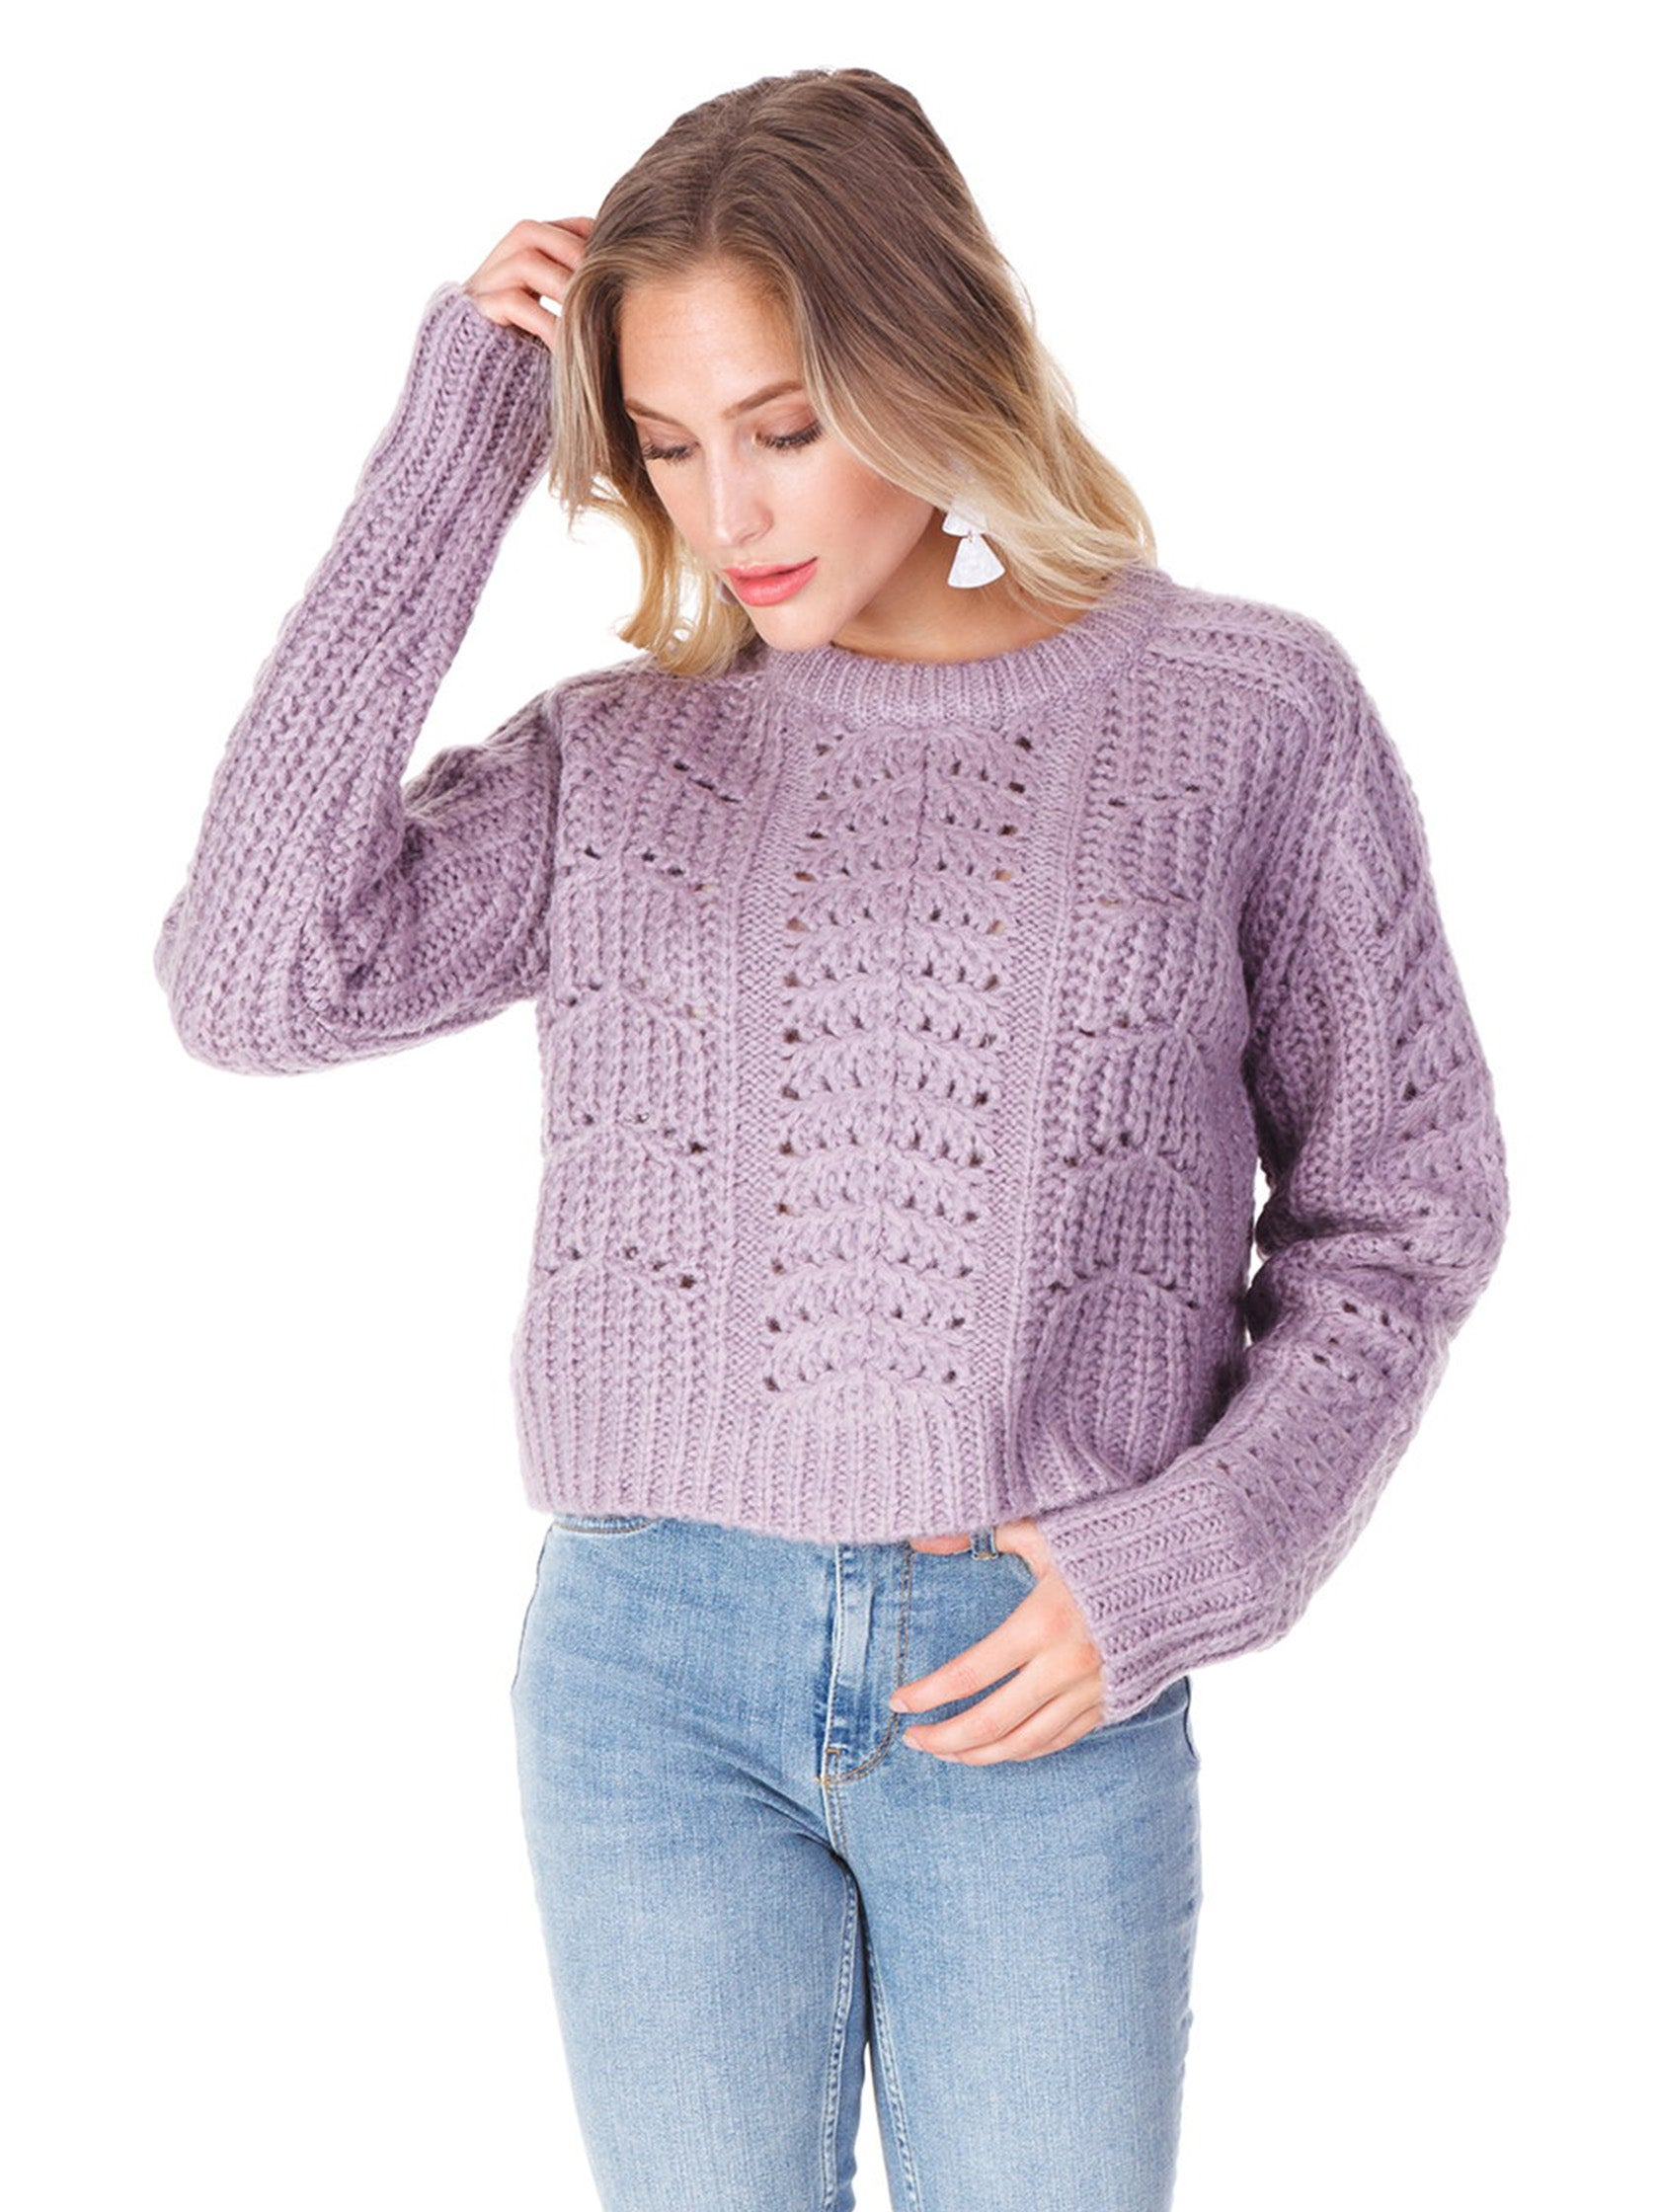 Women wearing a sweater rental from ASTR called Georgia Sweater